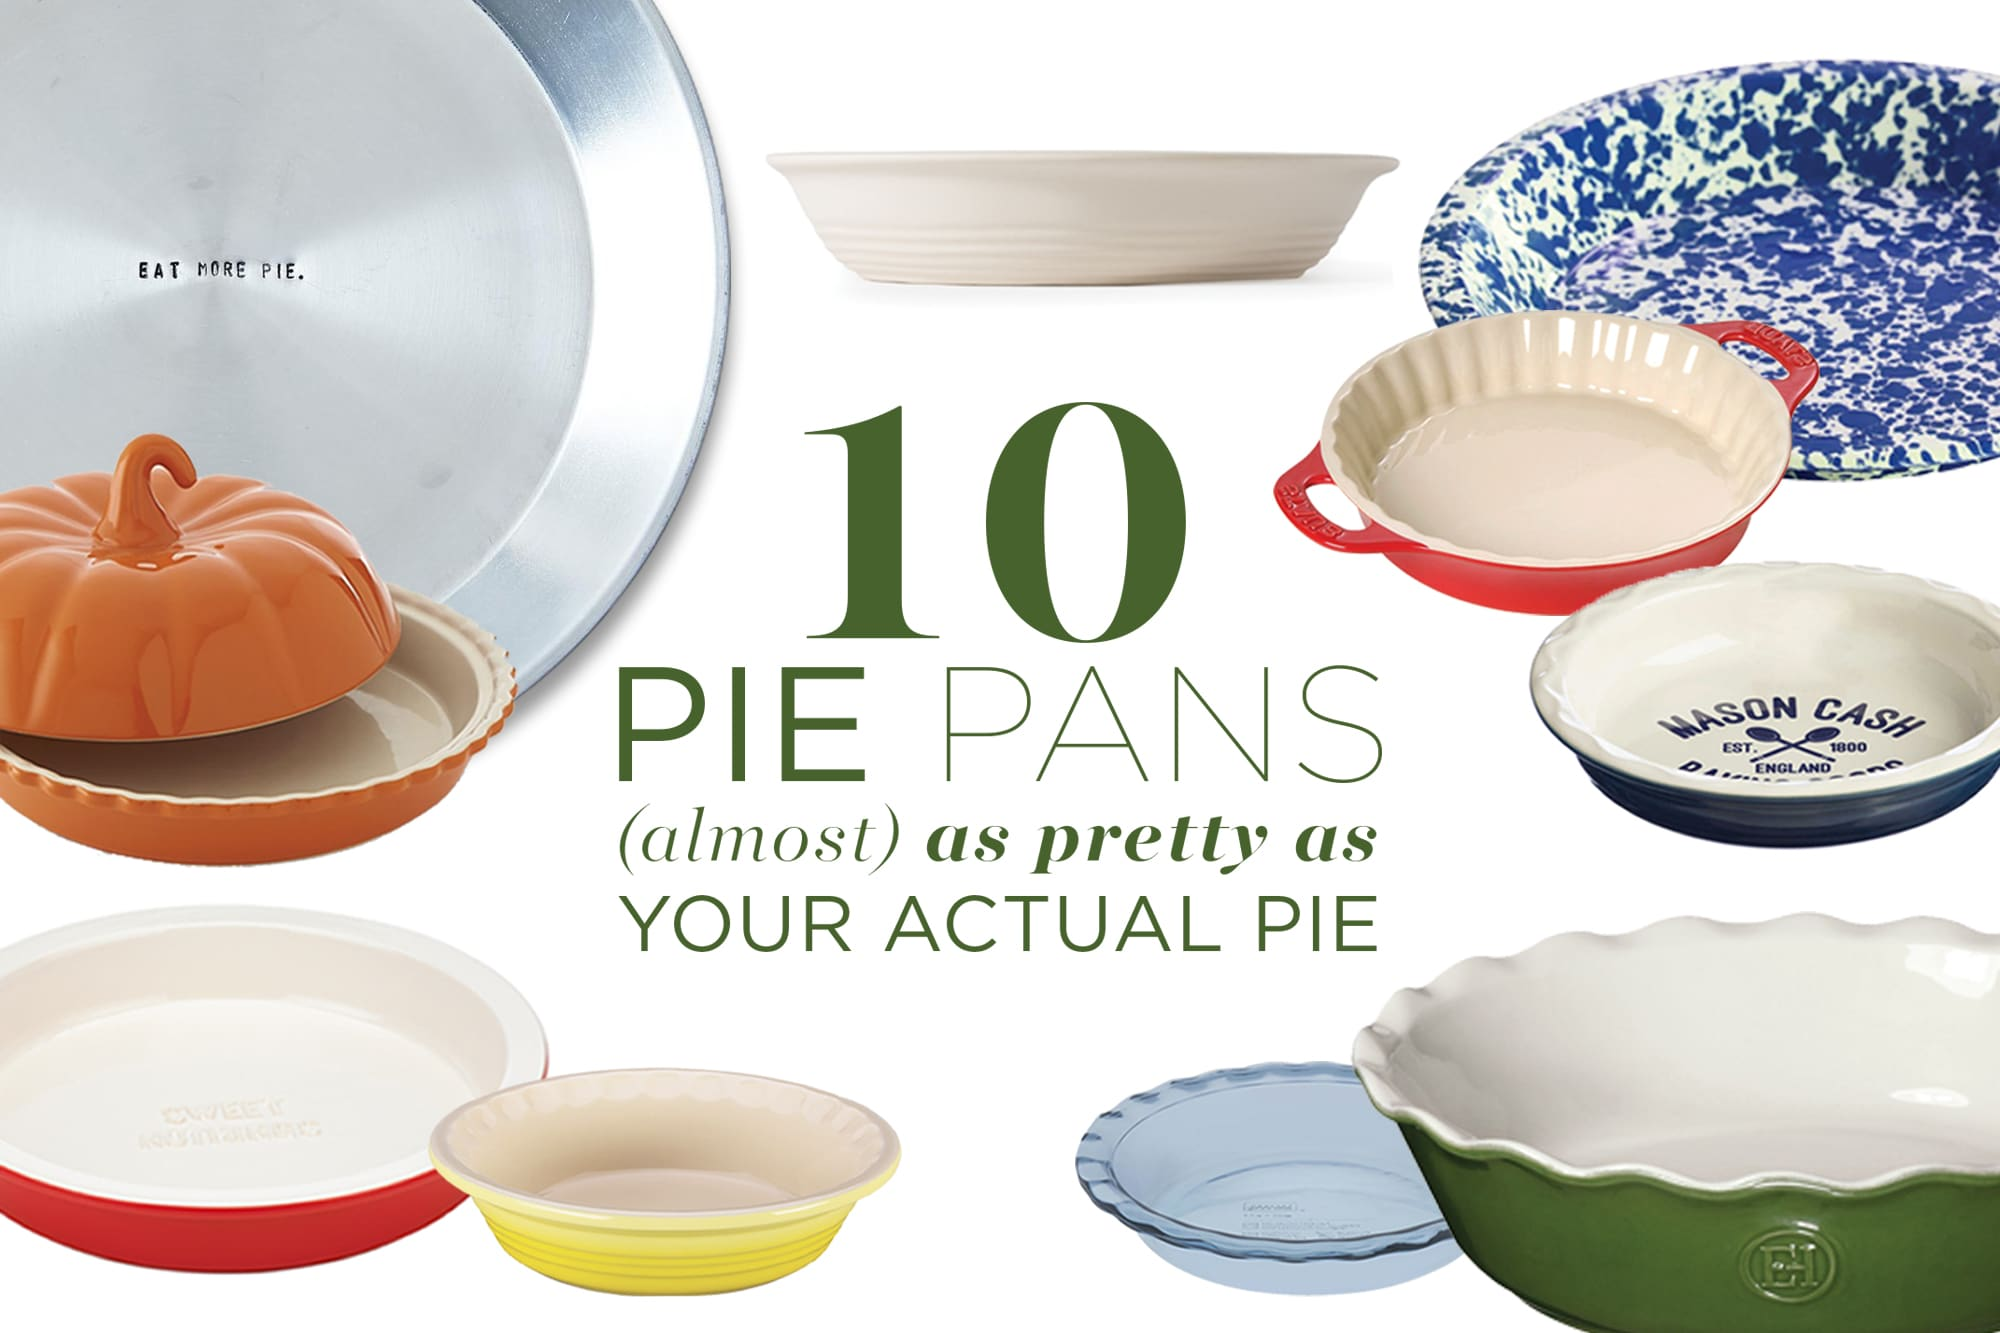 10 Pie Pans Almost as Pretty as Your Actual Pie: gallery image 1